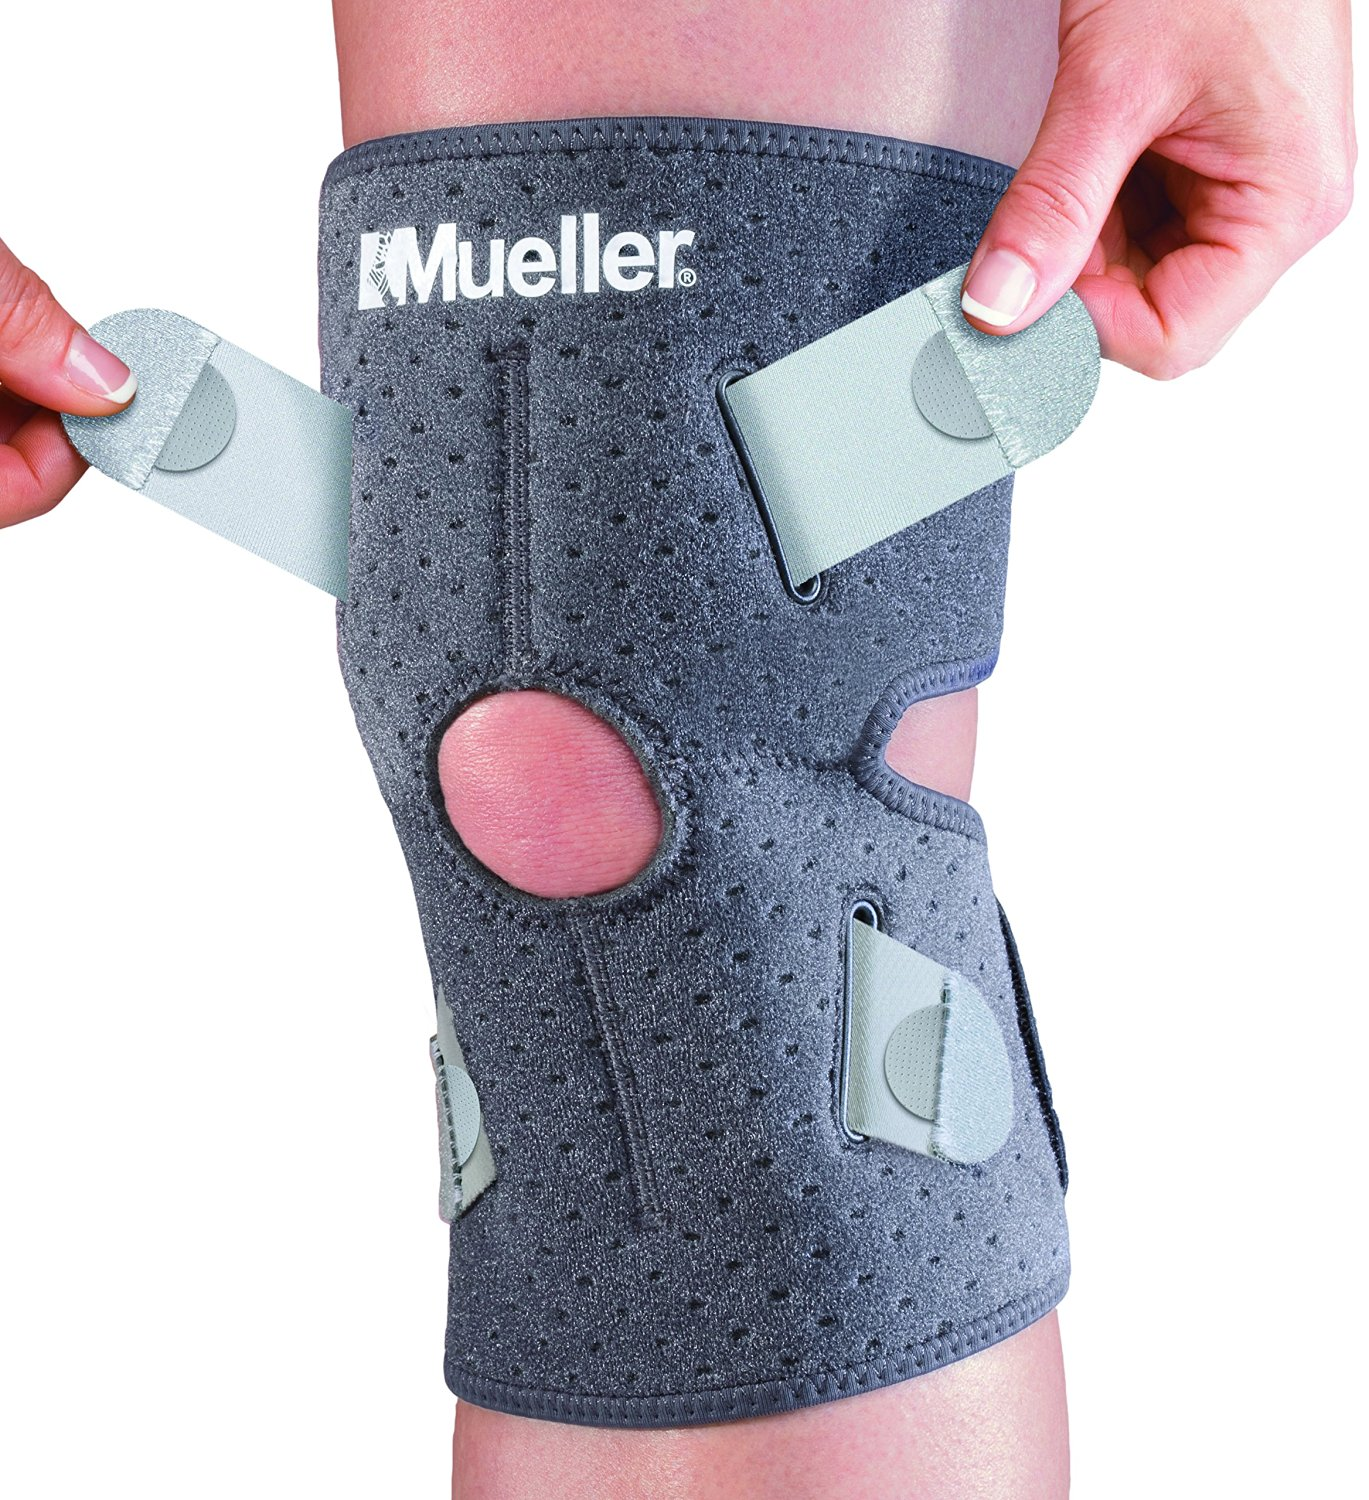 164a45bc6f Cheap Mueller Knee Support, find Mueller Knee Support deals on line ...